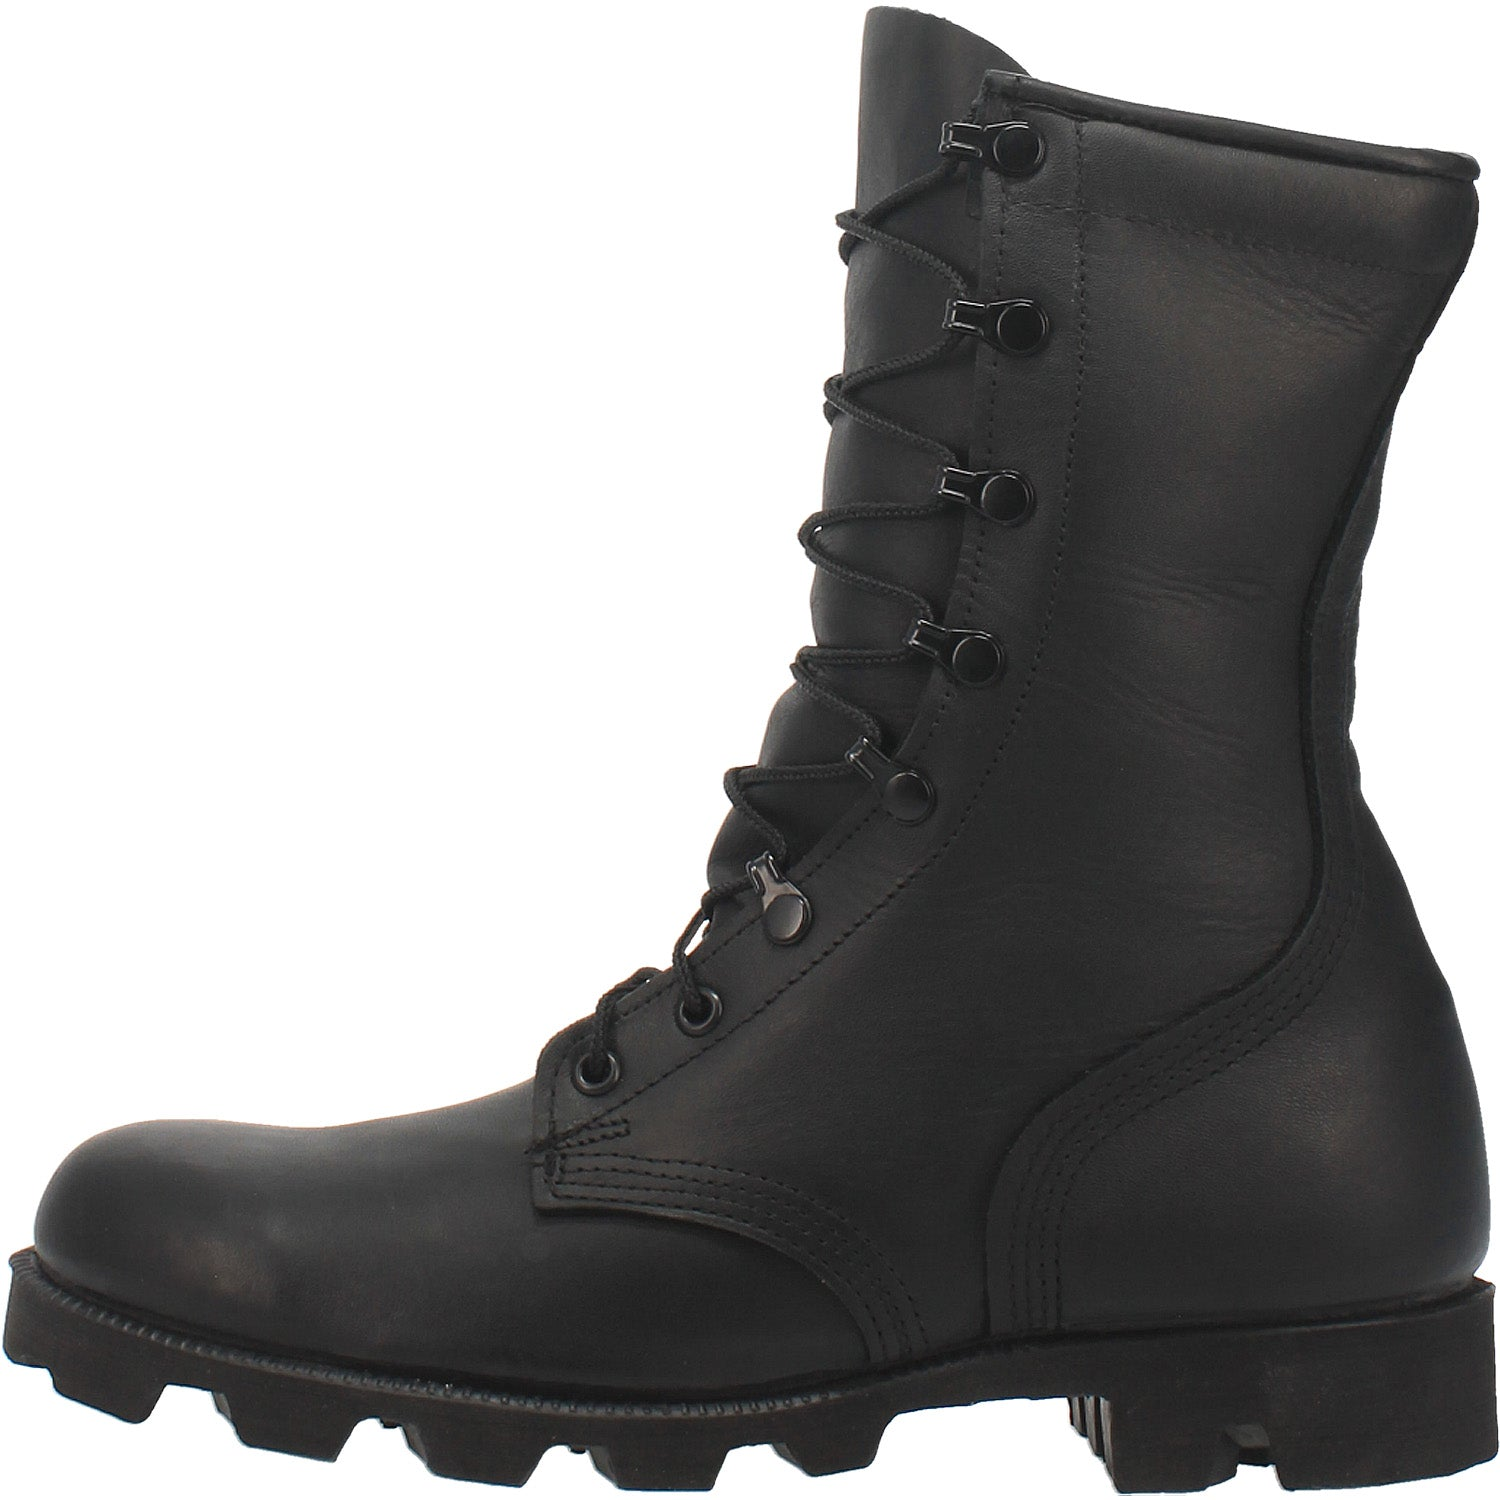 Black All-Leather Combat Boot with Panama Sole 27986670845994